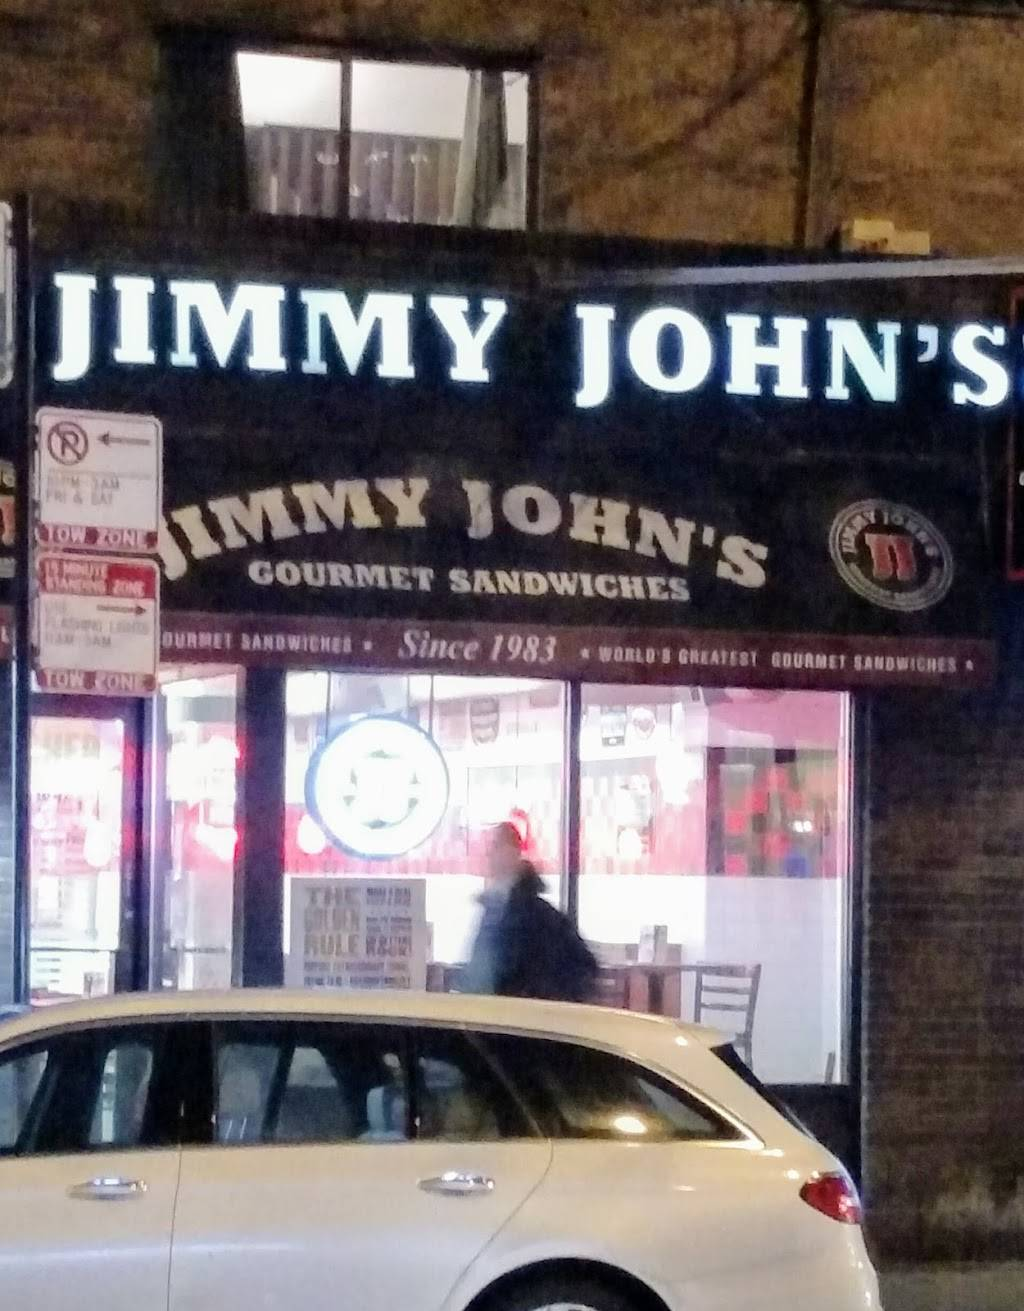 Jimmy Johns   meal delivery   2231 N Lincoln Ave, Chicago, IL 60614, USA   7732962300 OR +1 773-296-2300